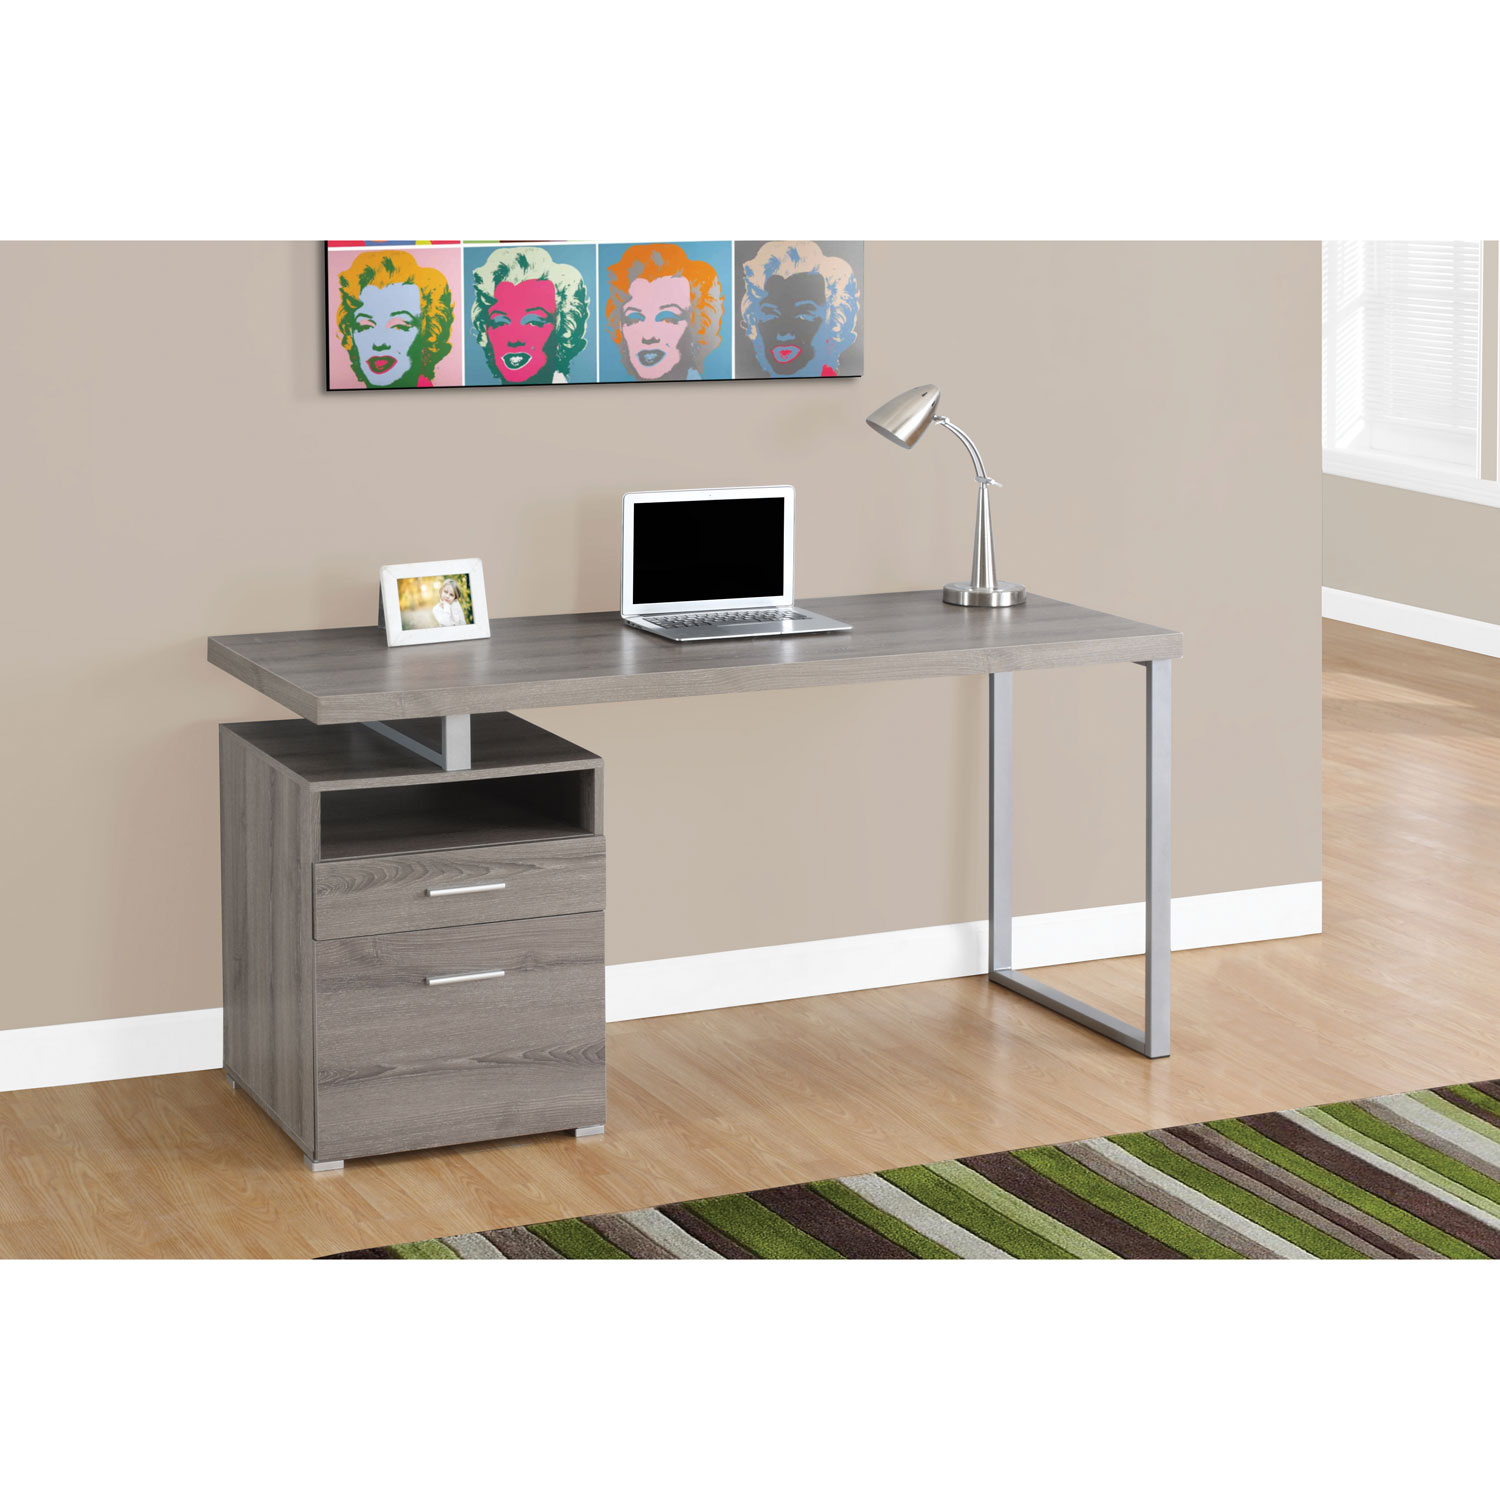 contemporary computer desk  dark taupe  desks  workstations  - contemporary computer desk  dark taupe  desks  workstations  best buycanada